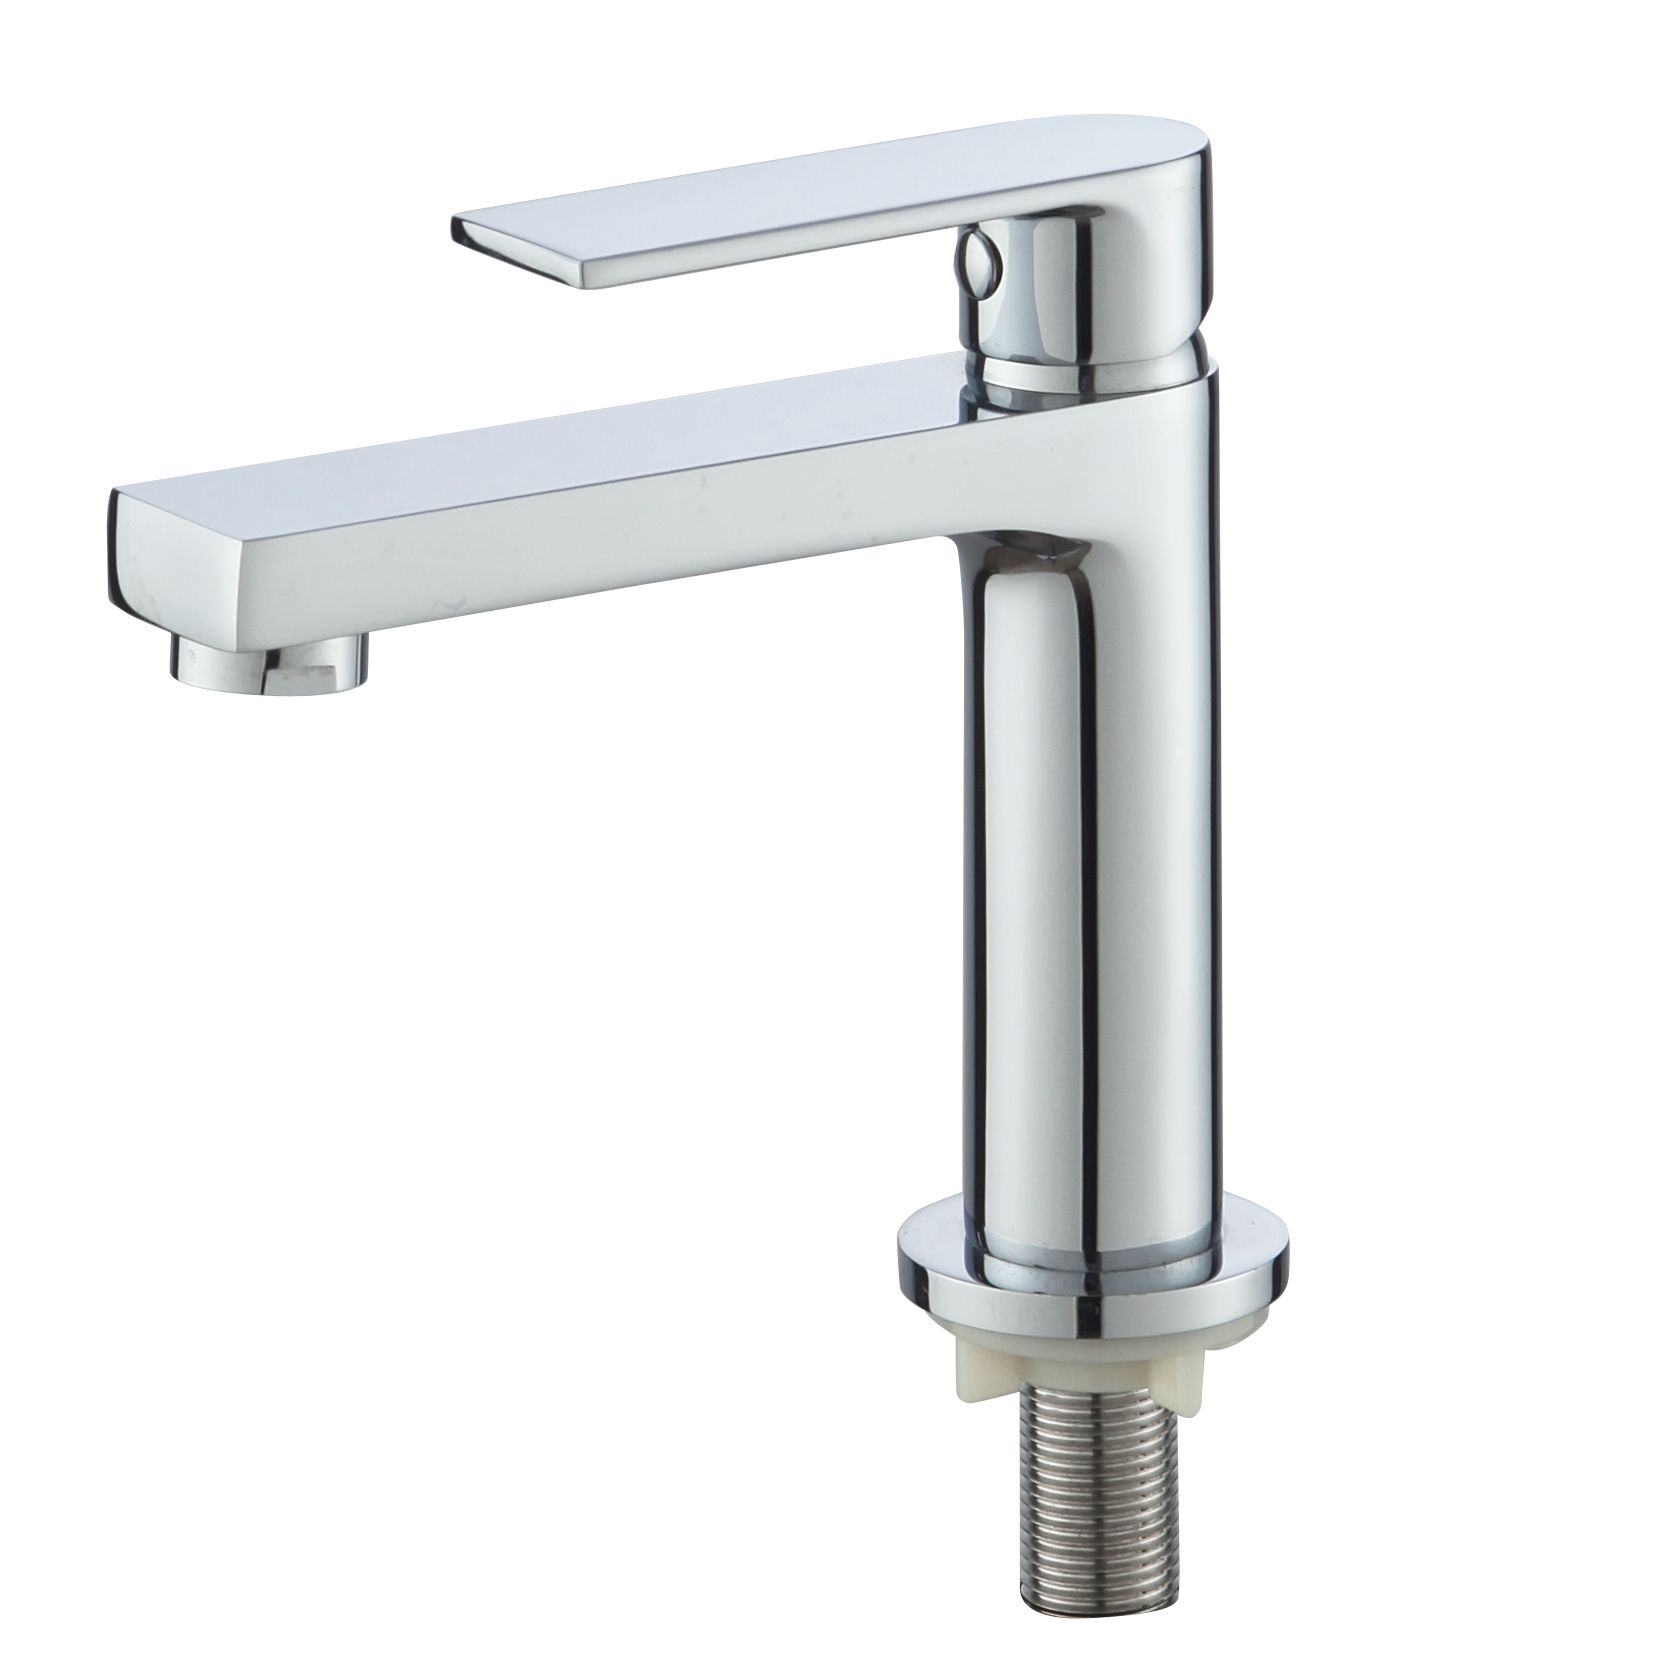 Amazon Hot Sale Sanitary Ware Single Handle Brass Bathroom Basin Faucet Buy Artistic Brass Faucet Parts Tuscany Faucets Wolverine Brass Kitchen Faucet Single Handle Bbrass Outdoor Faucet Product On Alibaba Com